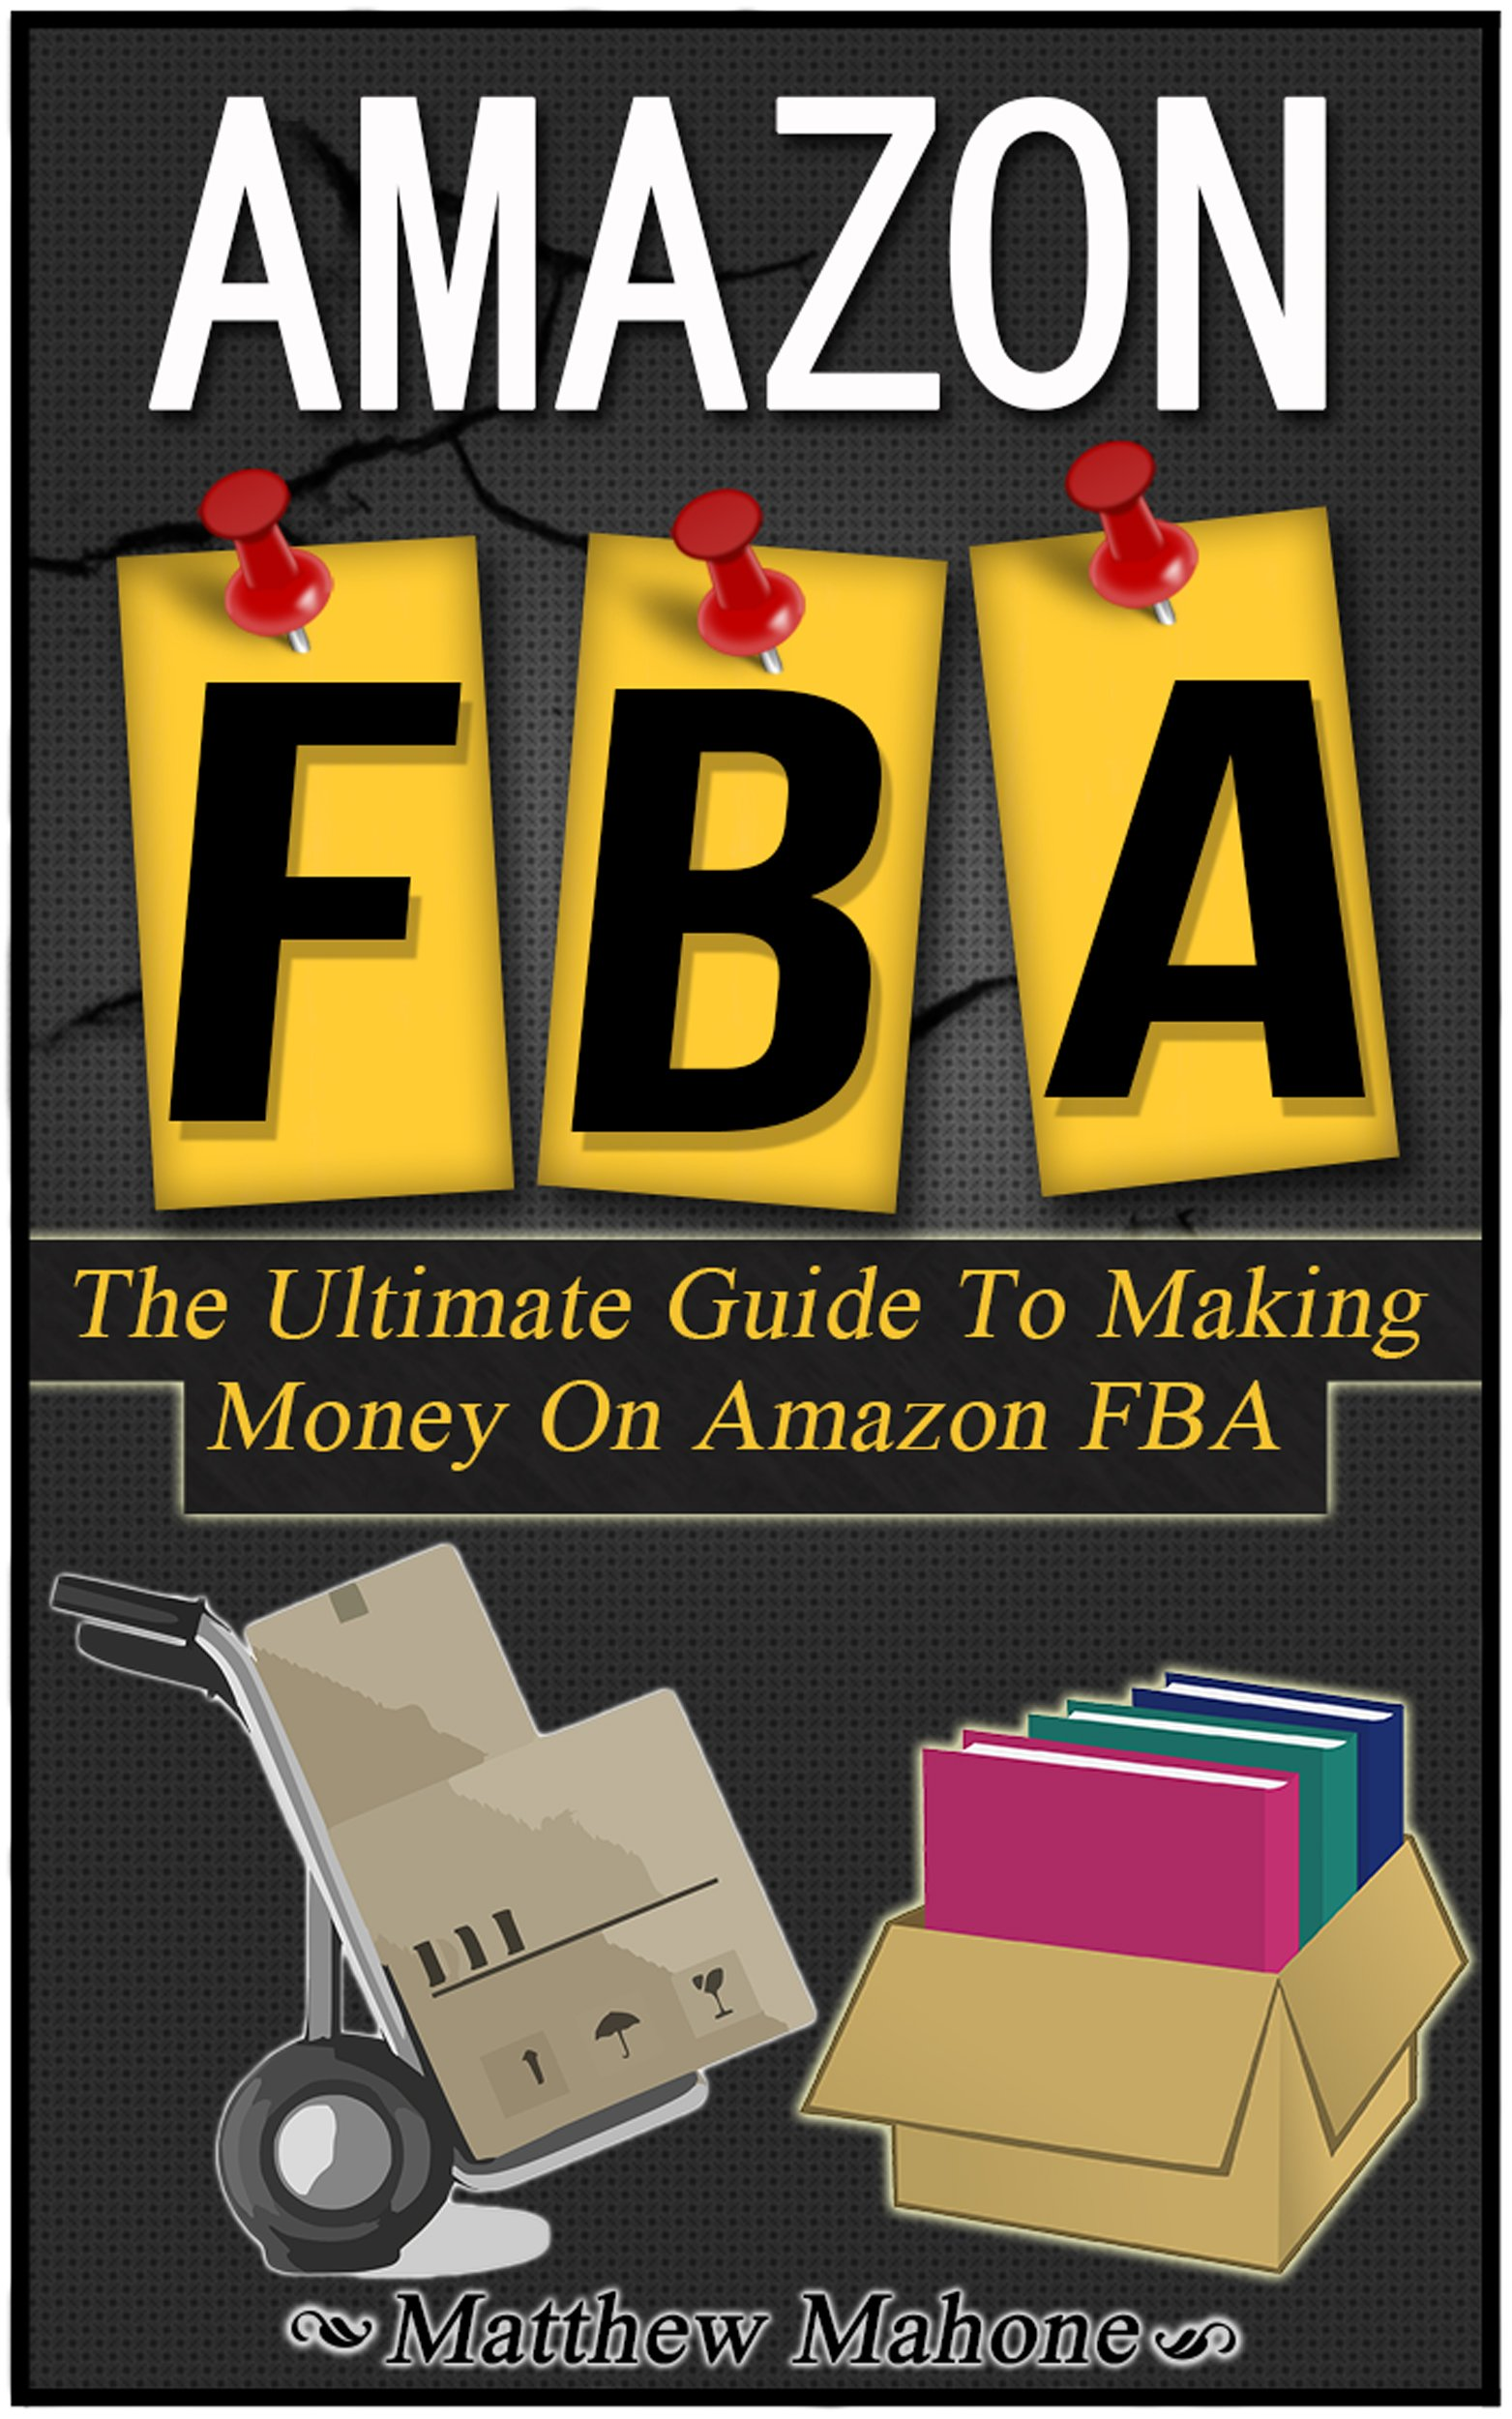 Amazon FBA  The Ultimate Guide To Making Money On Amazon FBA  Amazon Fba Selling On Amazon Amazon Fba Business Amazon Business Amazon Selling Amazon Selling Secrets   English Edition